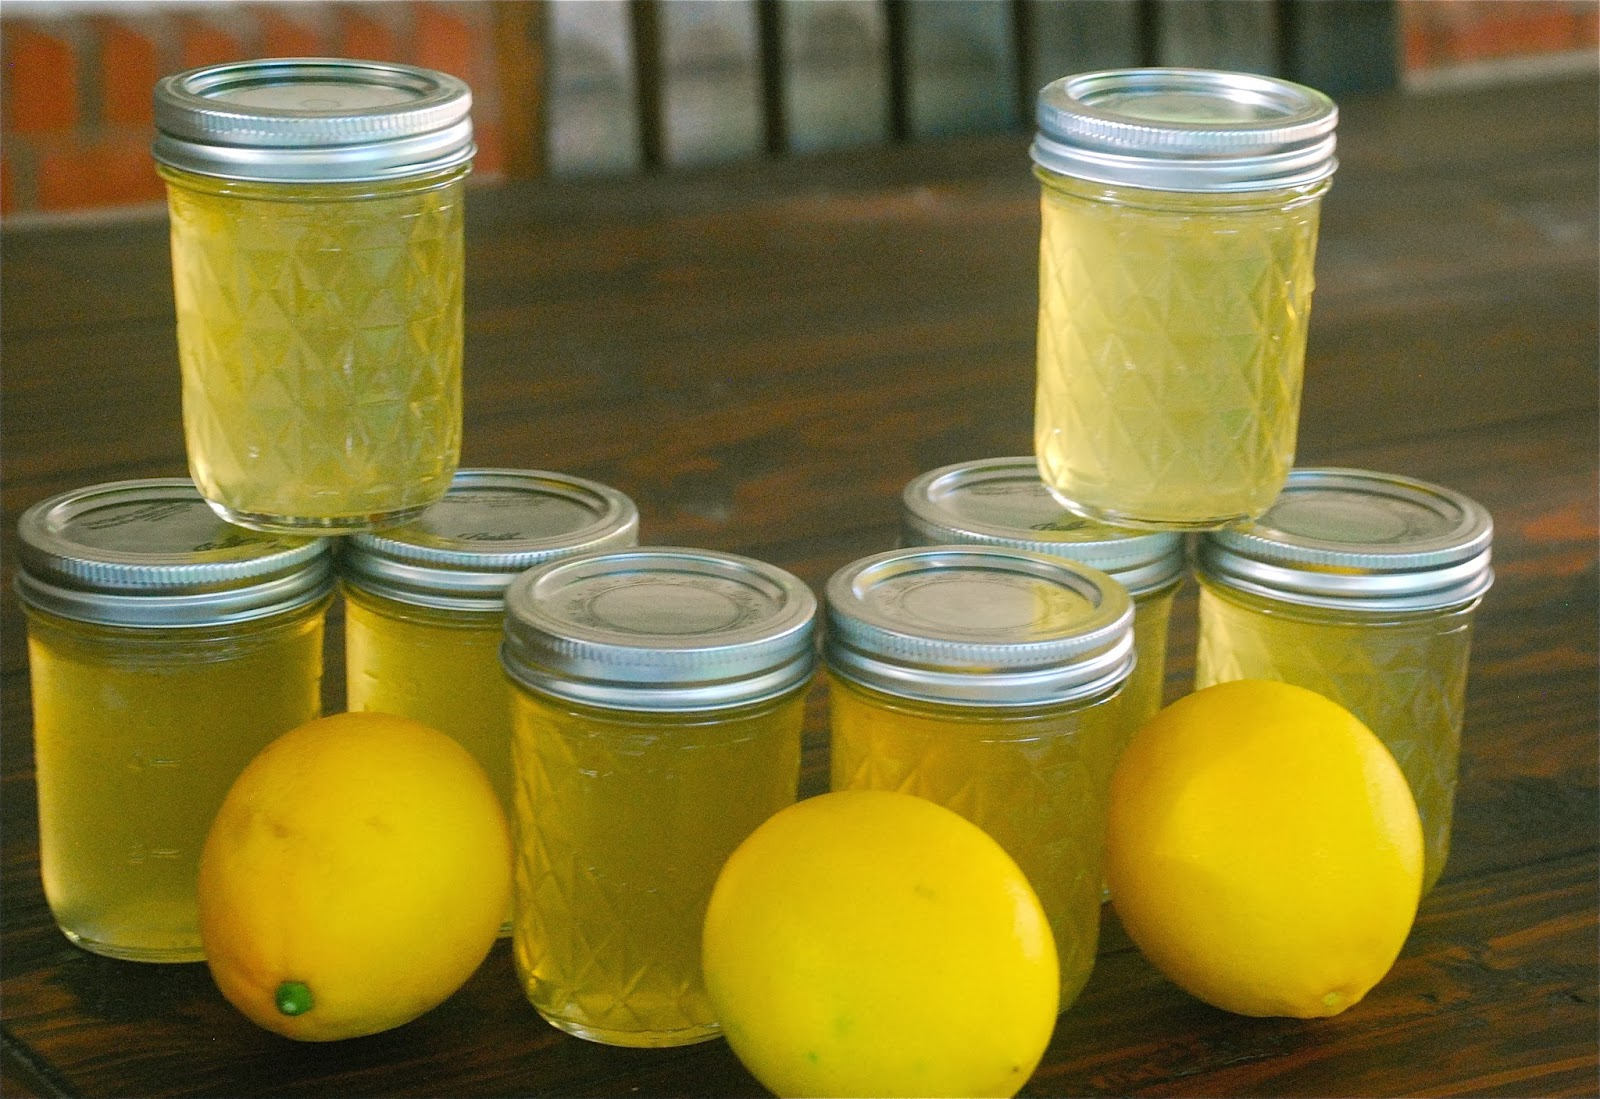 Amazing Lemon Jelly Pictures & Backgrounds